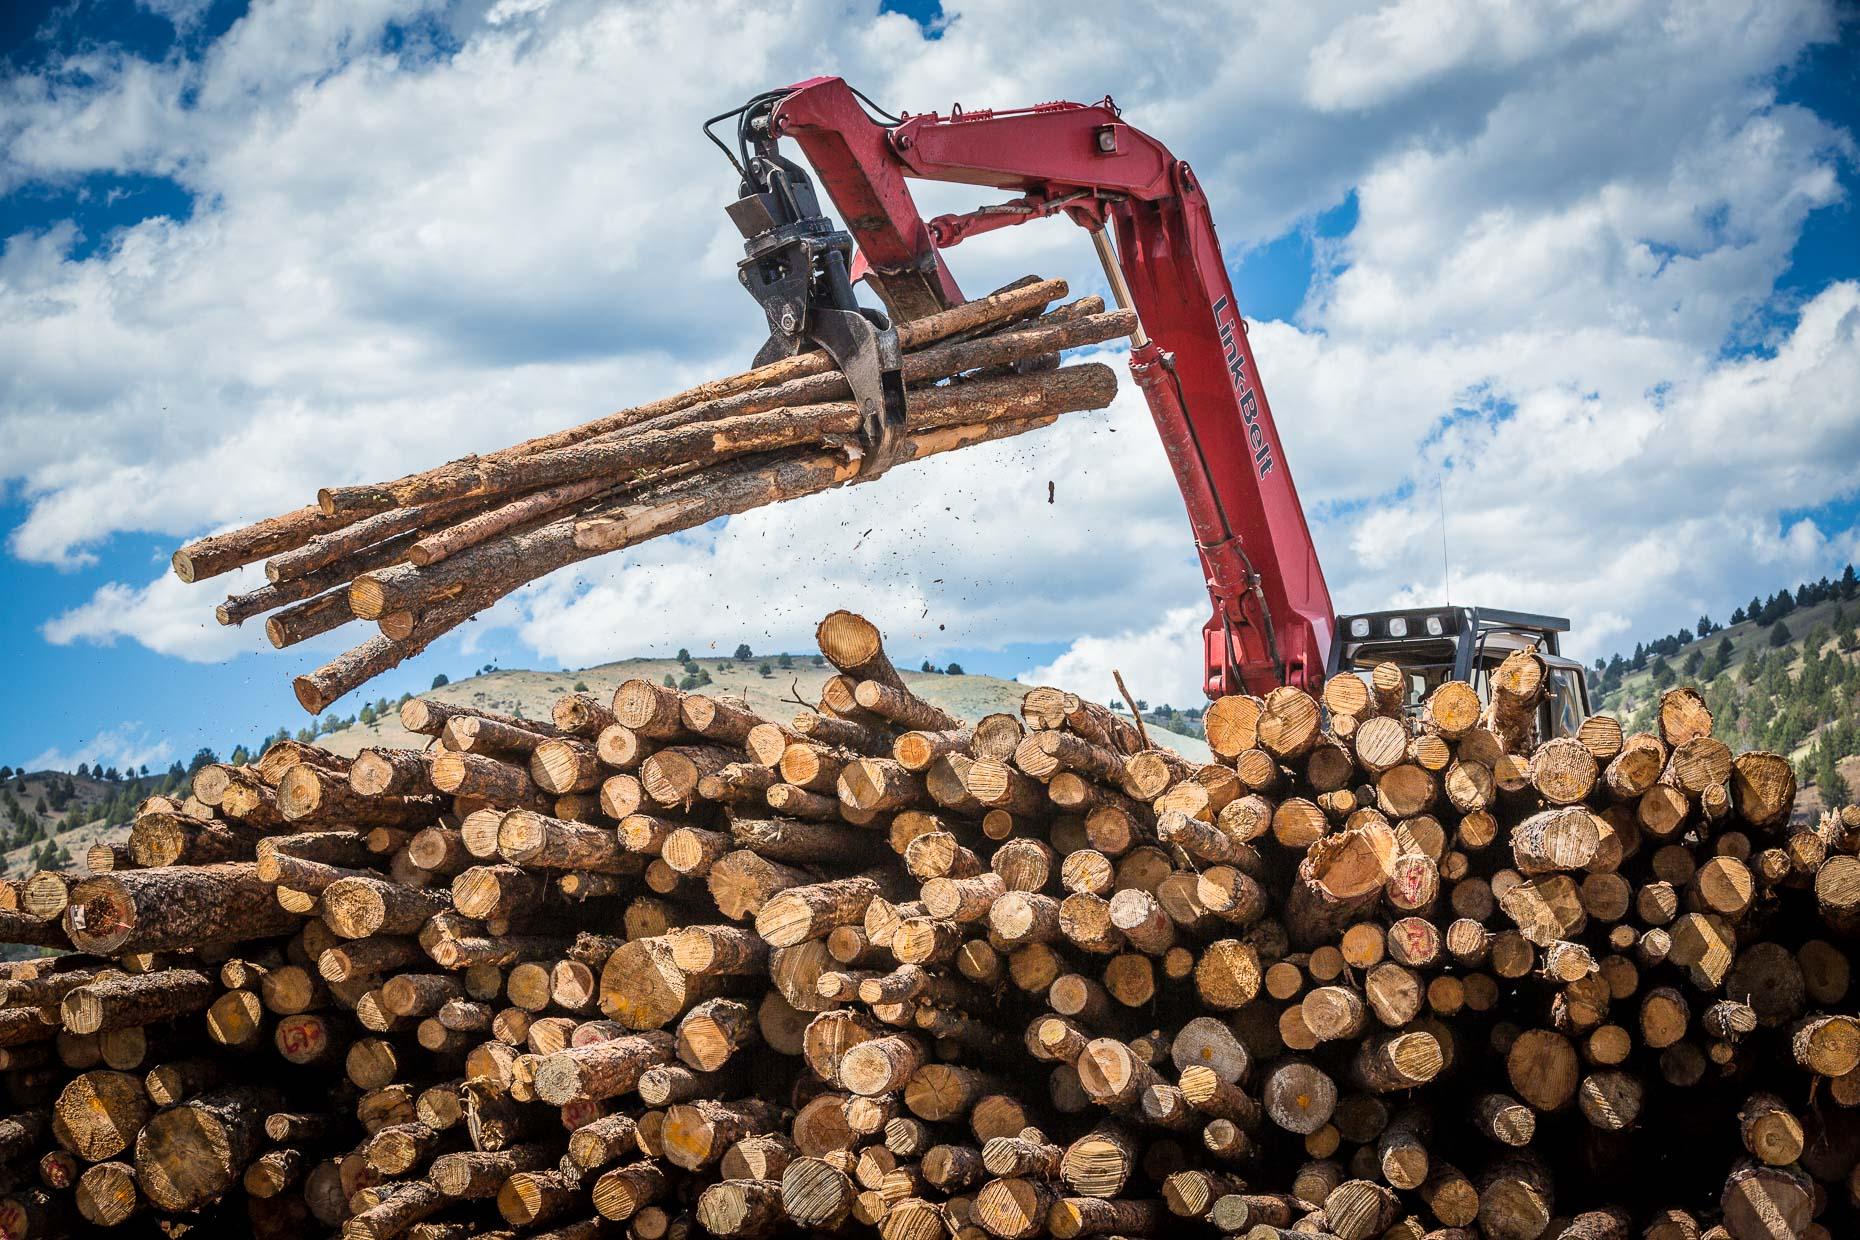 Machine picks up logs for processing at lumber mill in Oregon by David Zaitz.